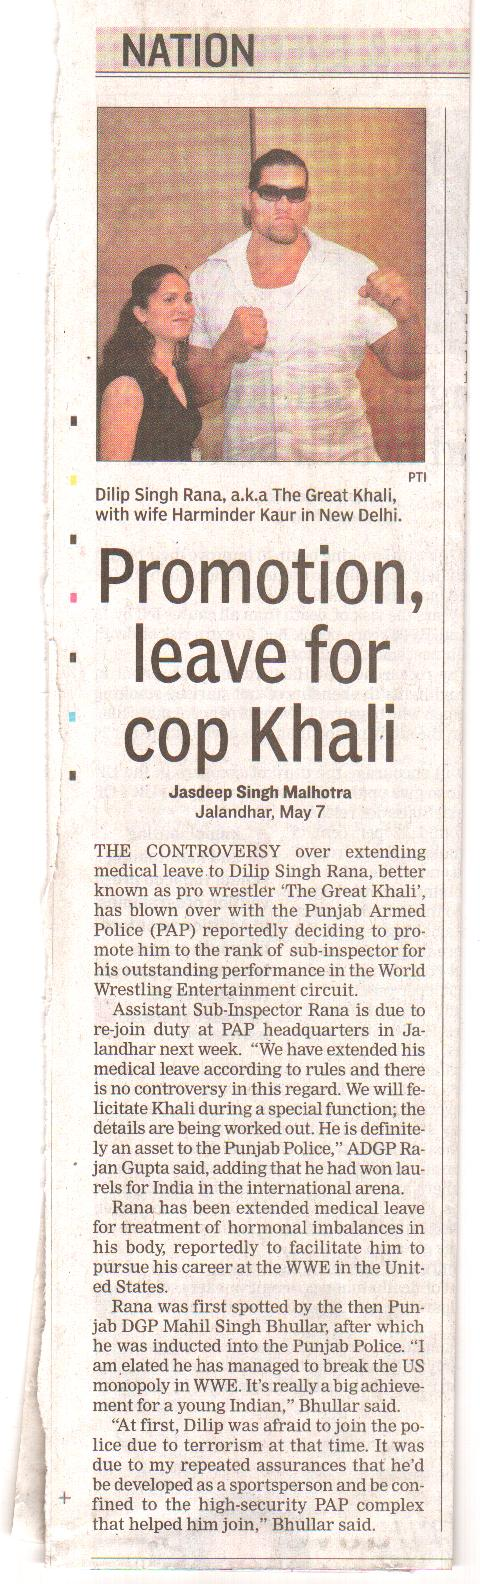 THE GREAT KHALI urf INSPECTOR DALIP SINGH RANA